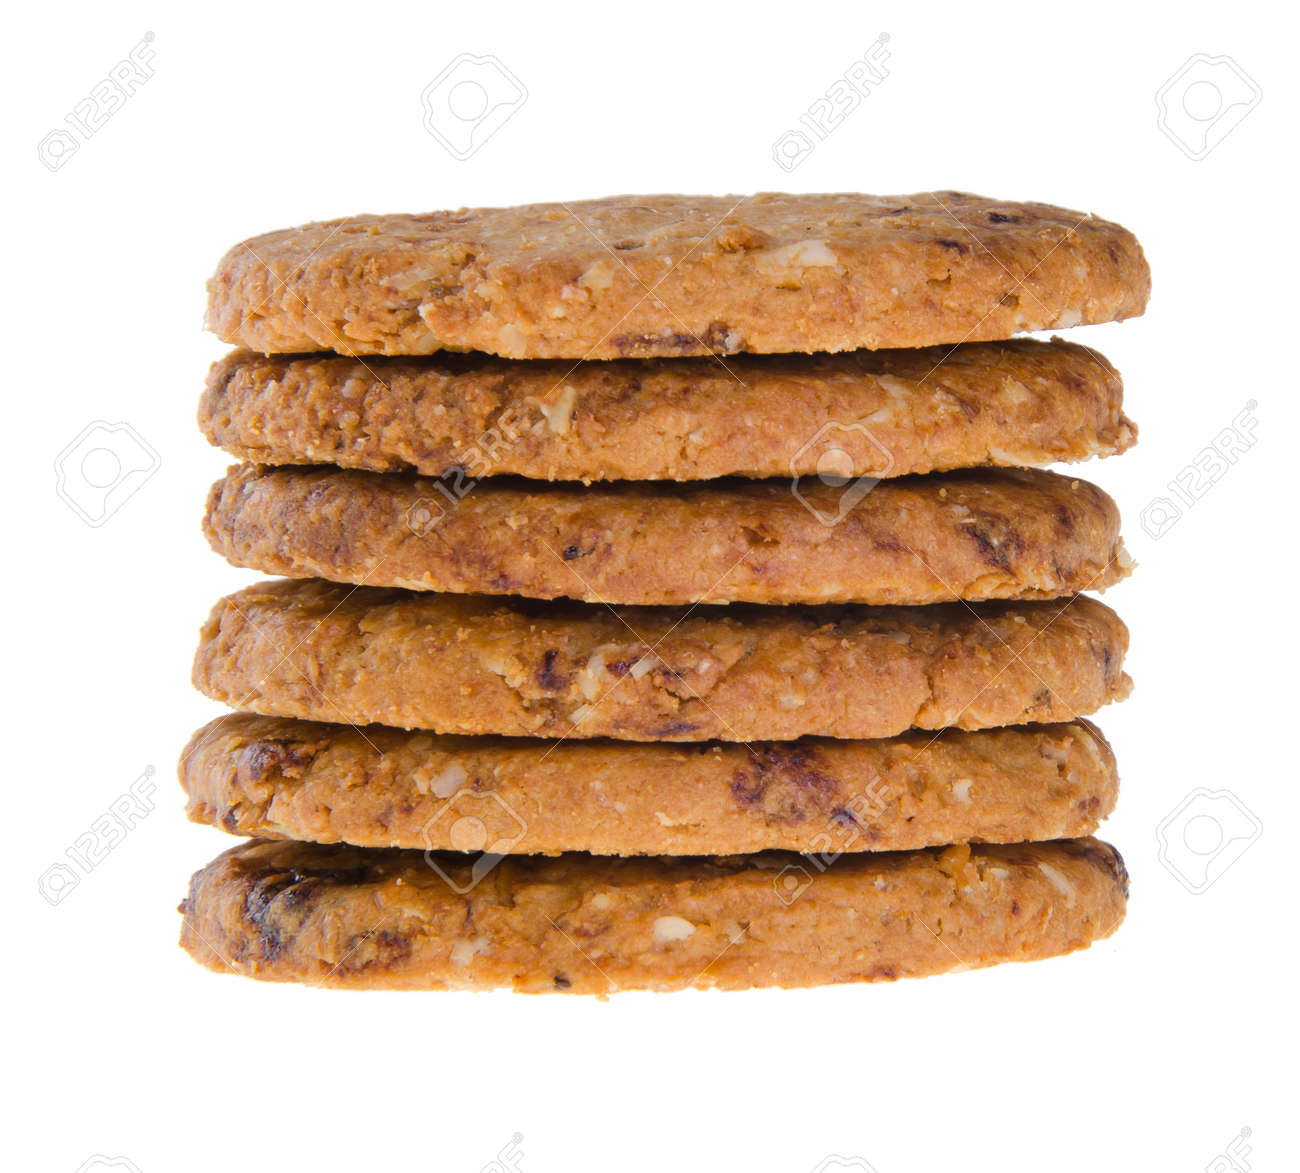 cookies, homemade cookies on the background Stock Photo - 15492557